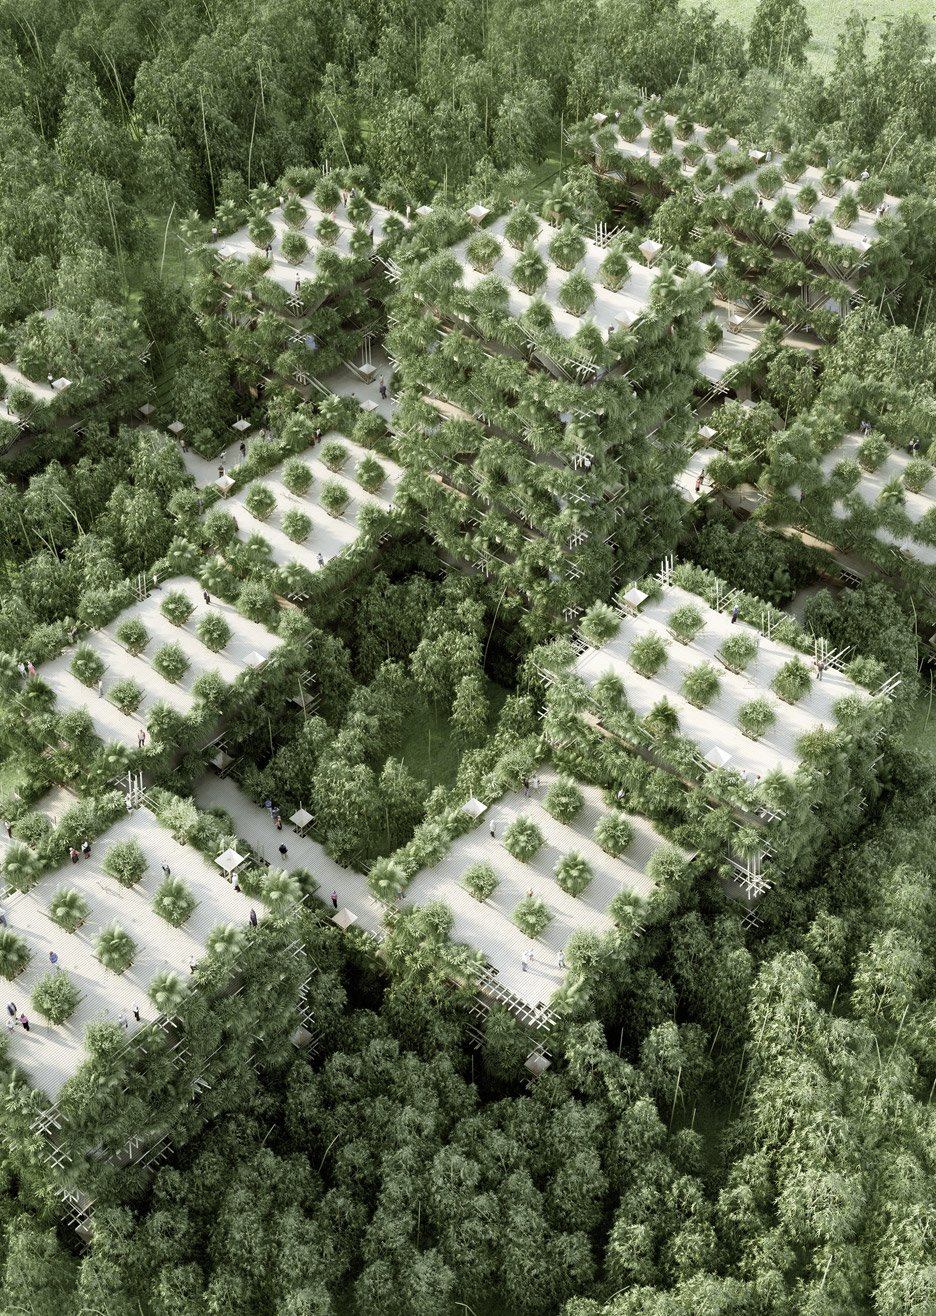 Penda unveils vision for bamboo city made from interlocking modular components